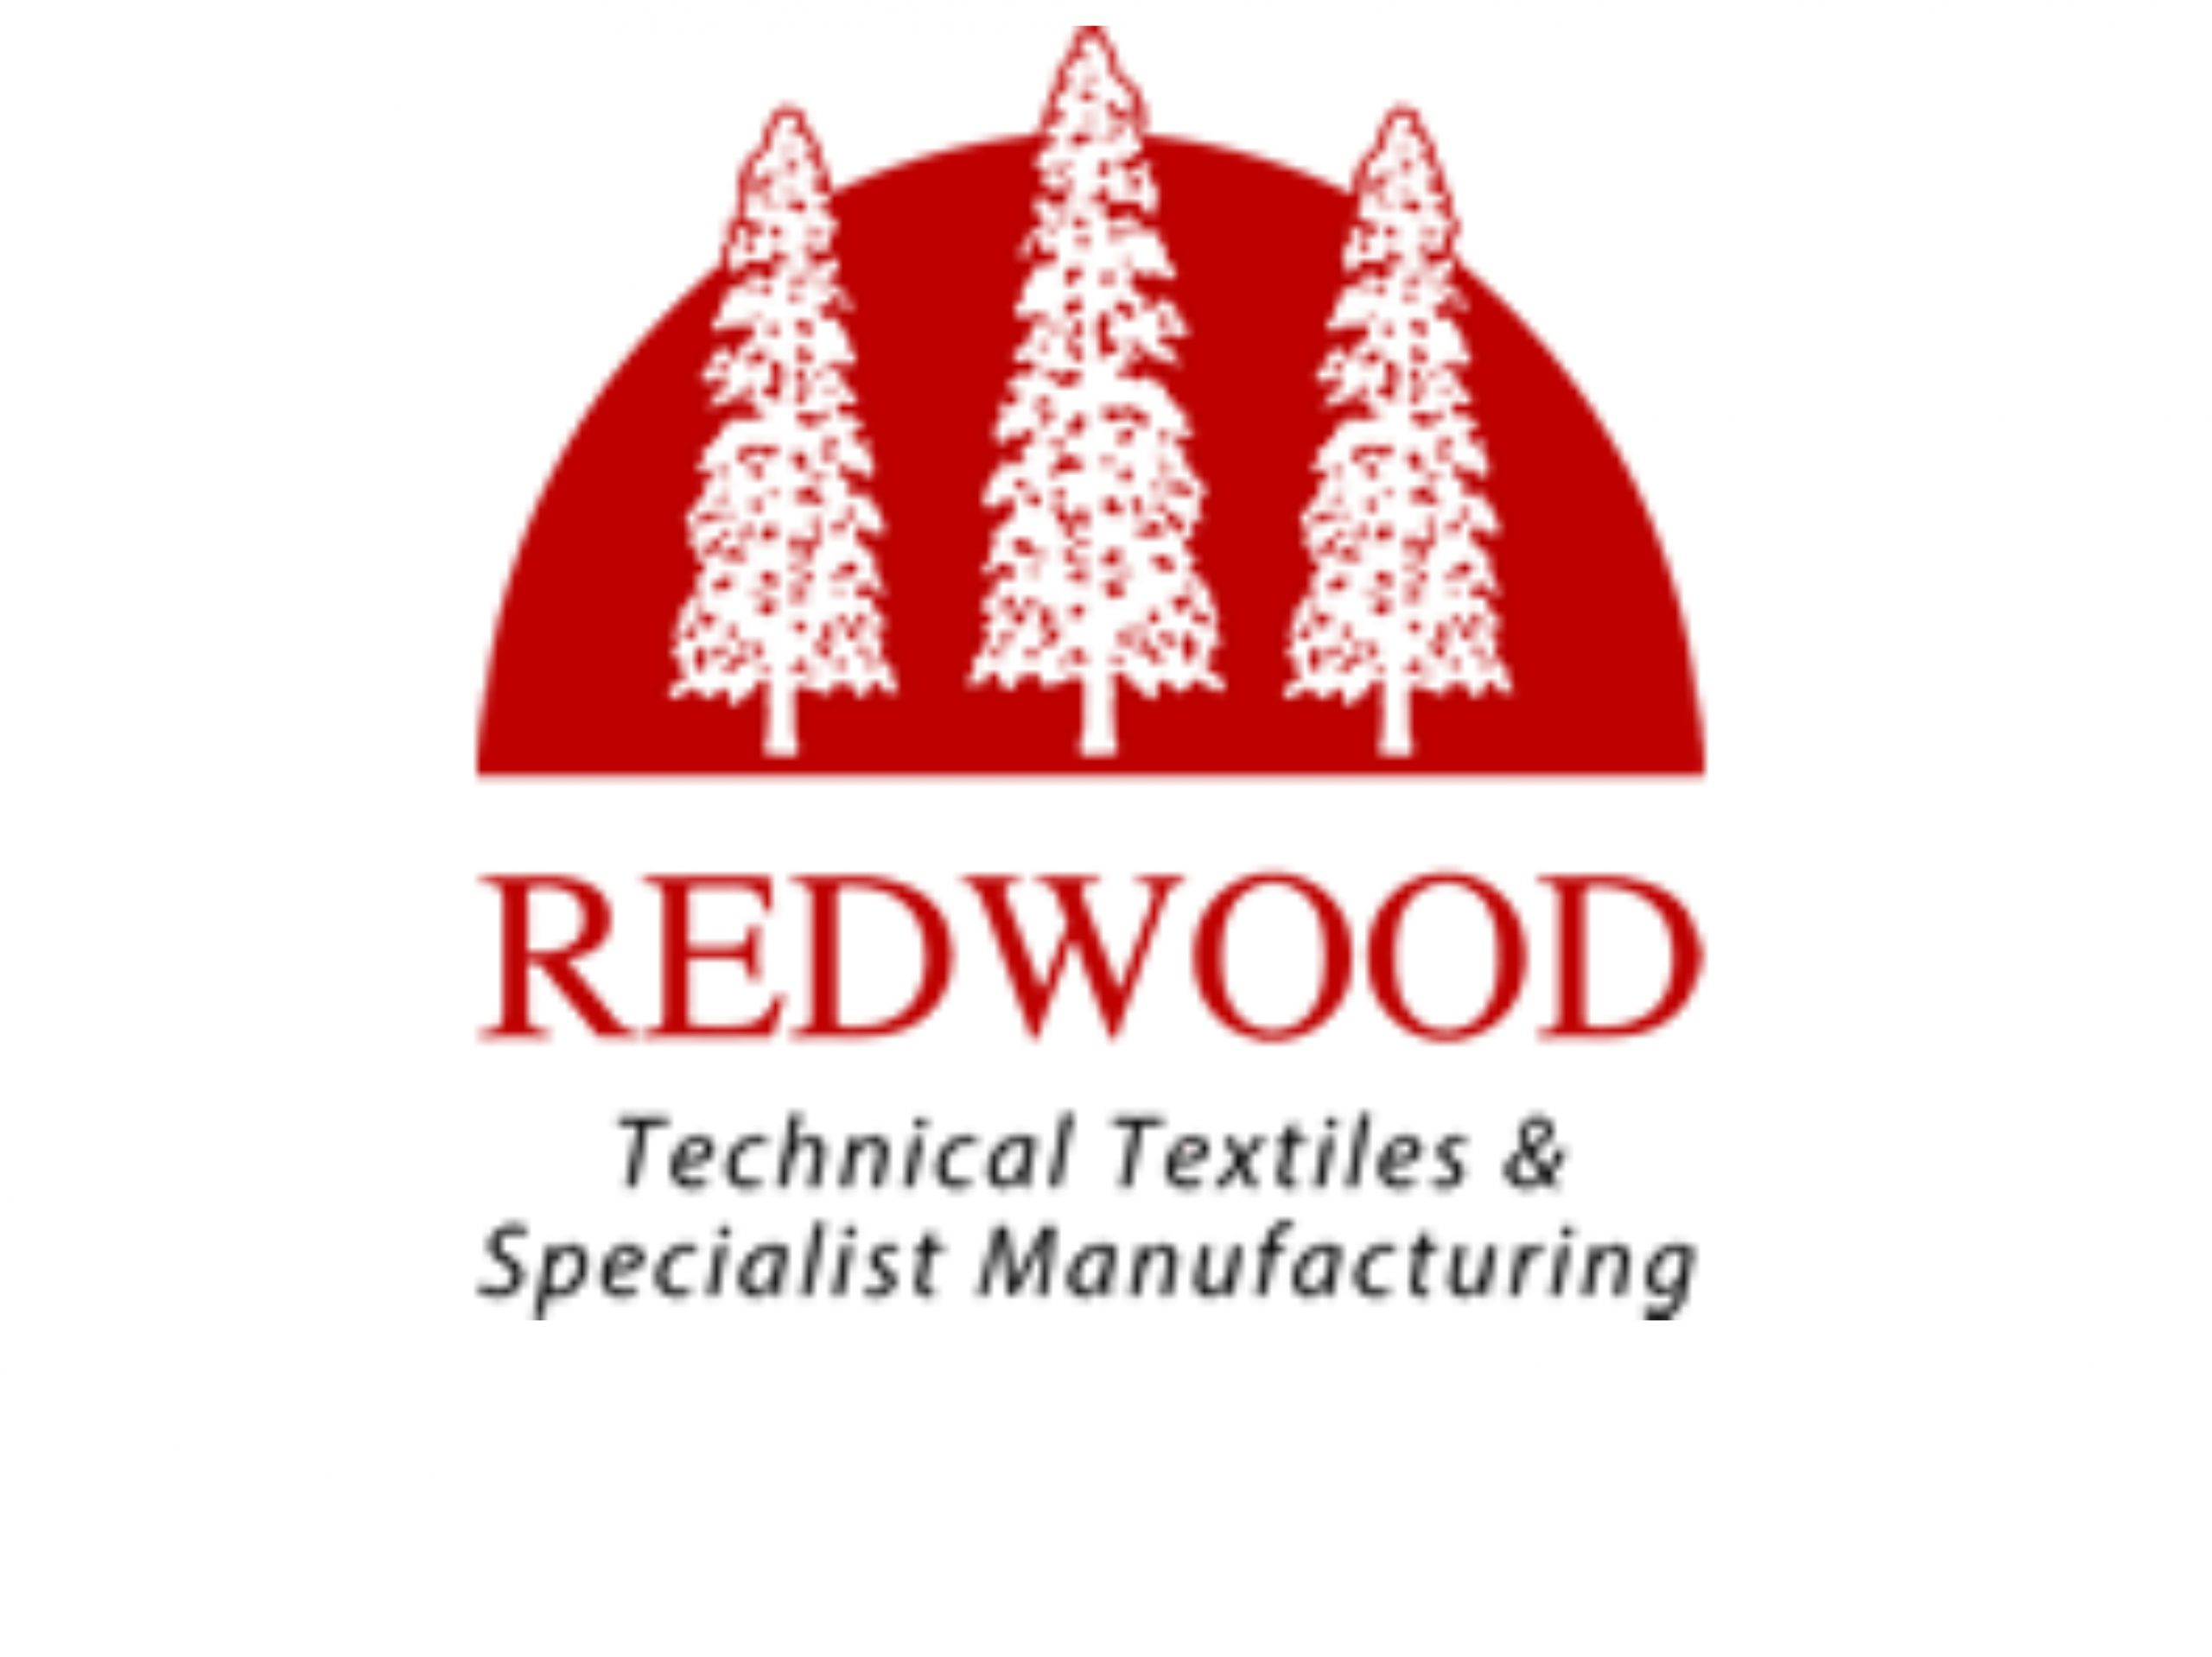 Redwood TTM Support Production of Protective Gowns for the NHS